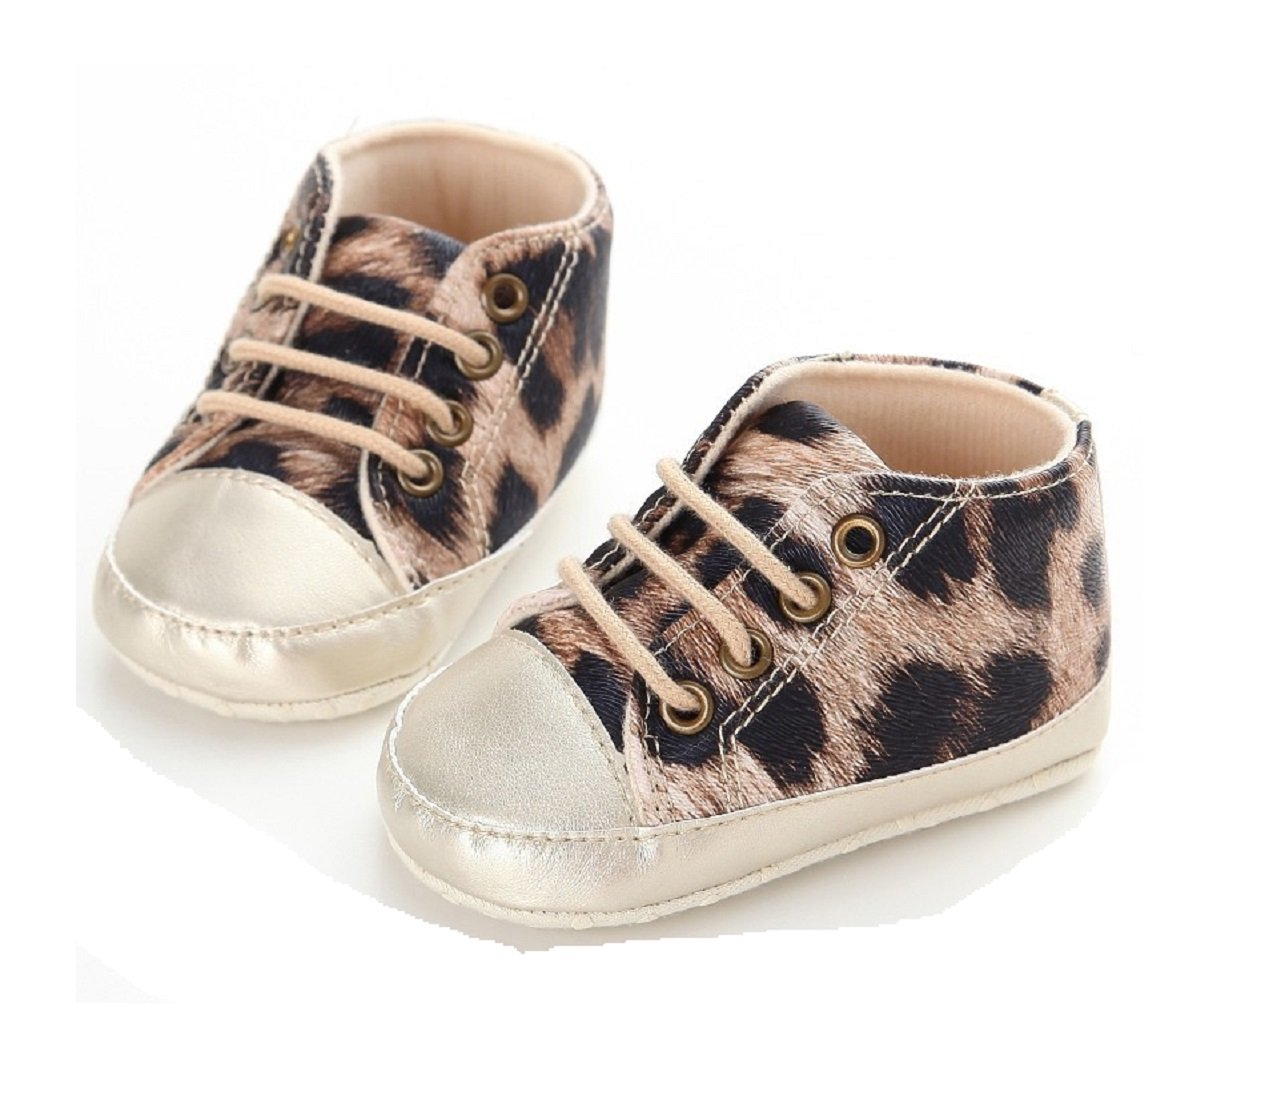 New Style Kids Boy Girls Leopard Sports Sneakers Classic Spring Autumn Newborn Baby Prewalkers Boots Crib Babe Soft Bottom Shoes 3